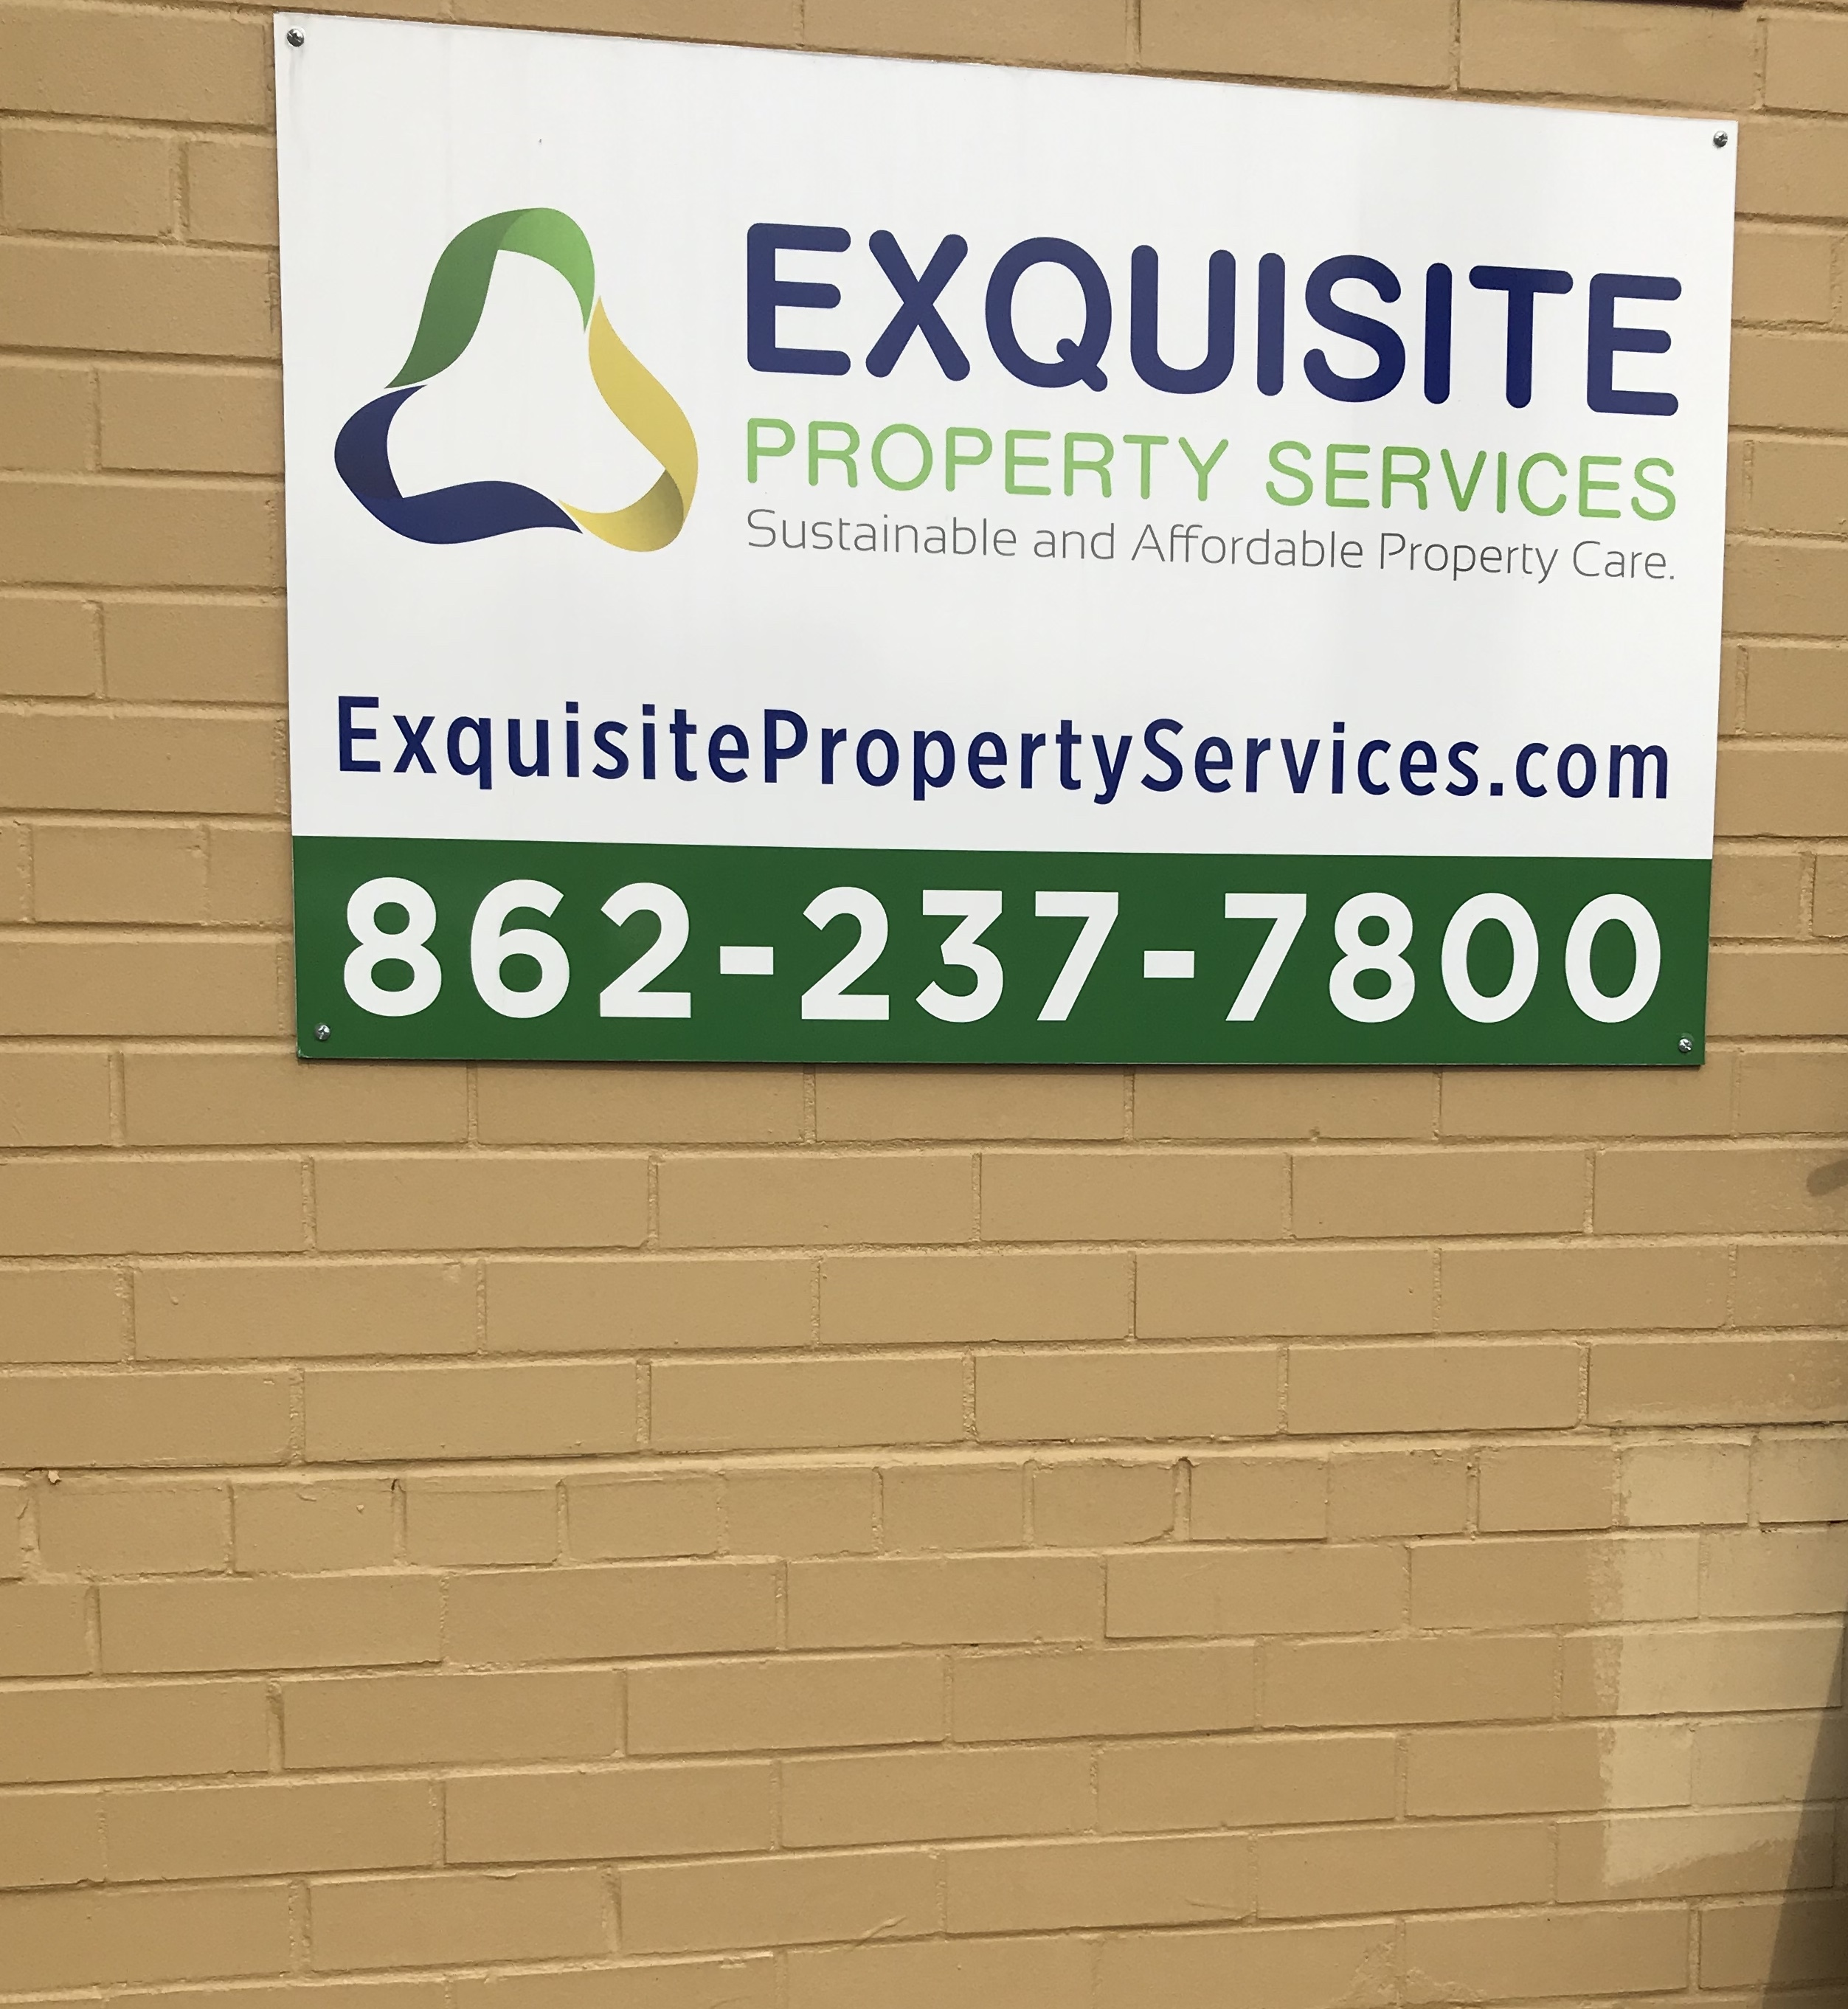 Exquisite Property Services